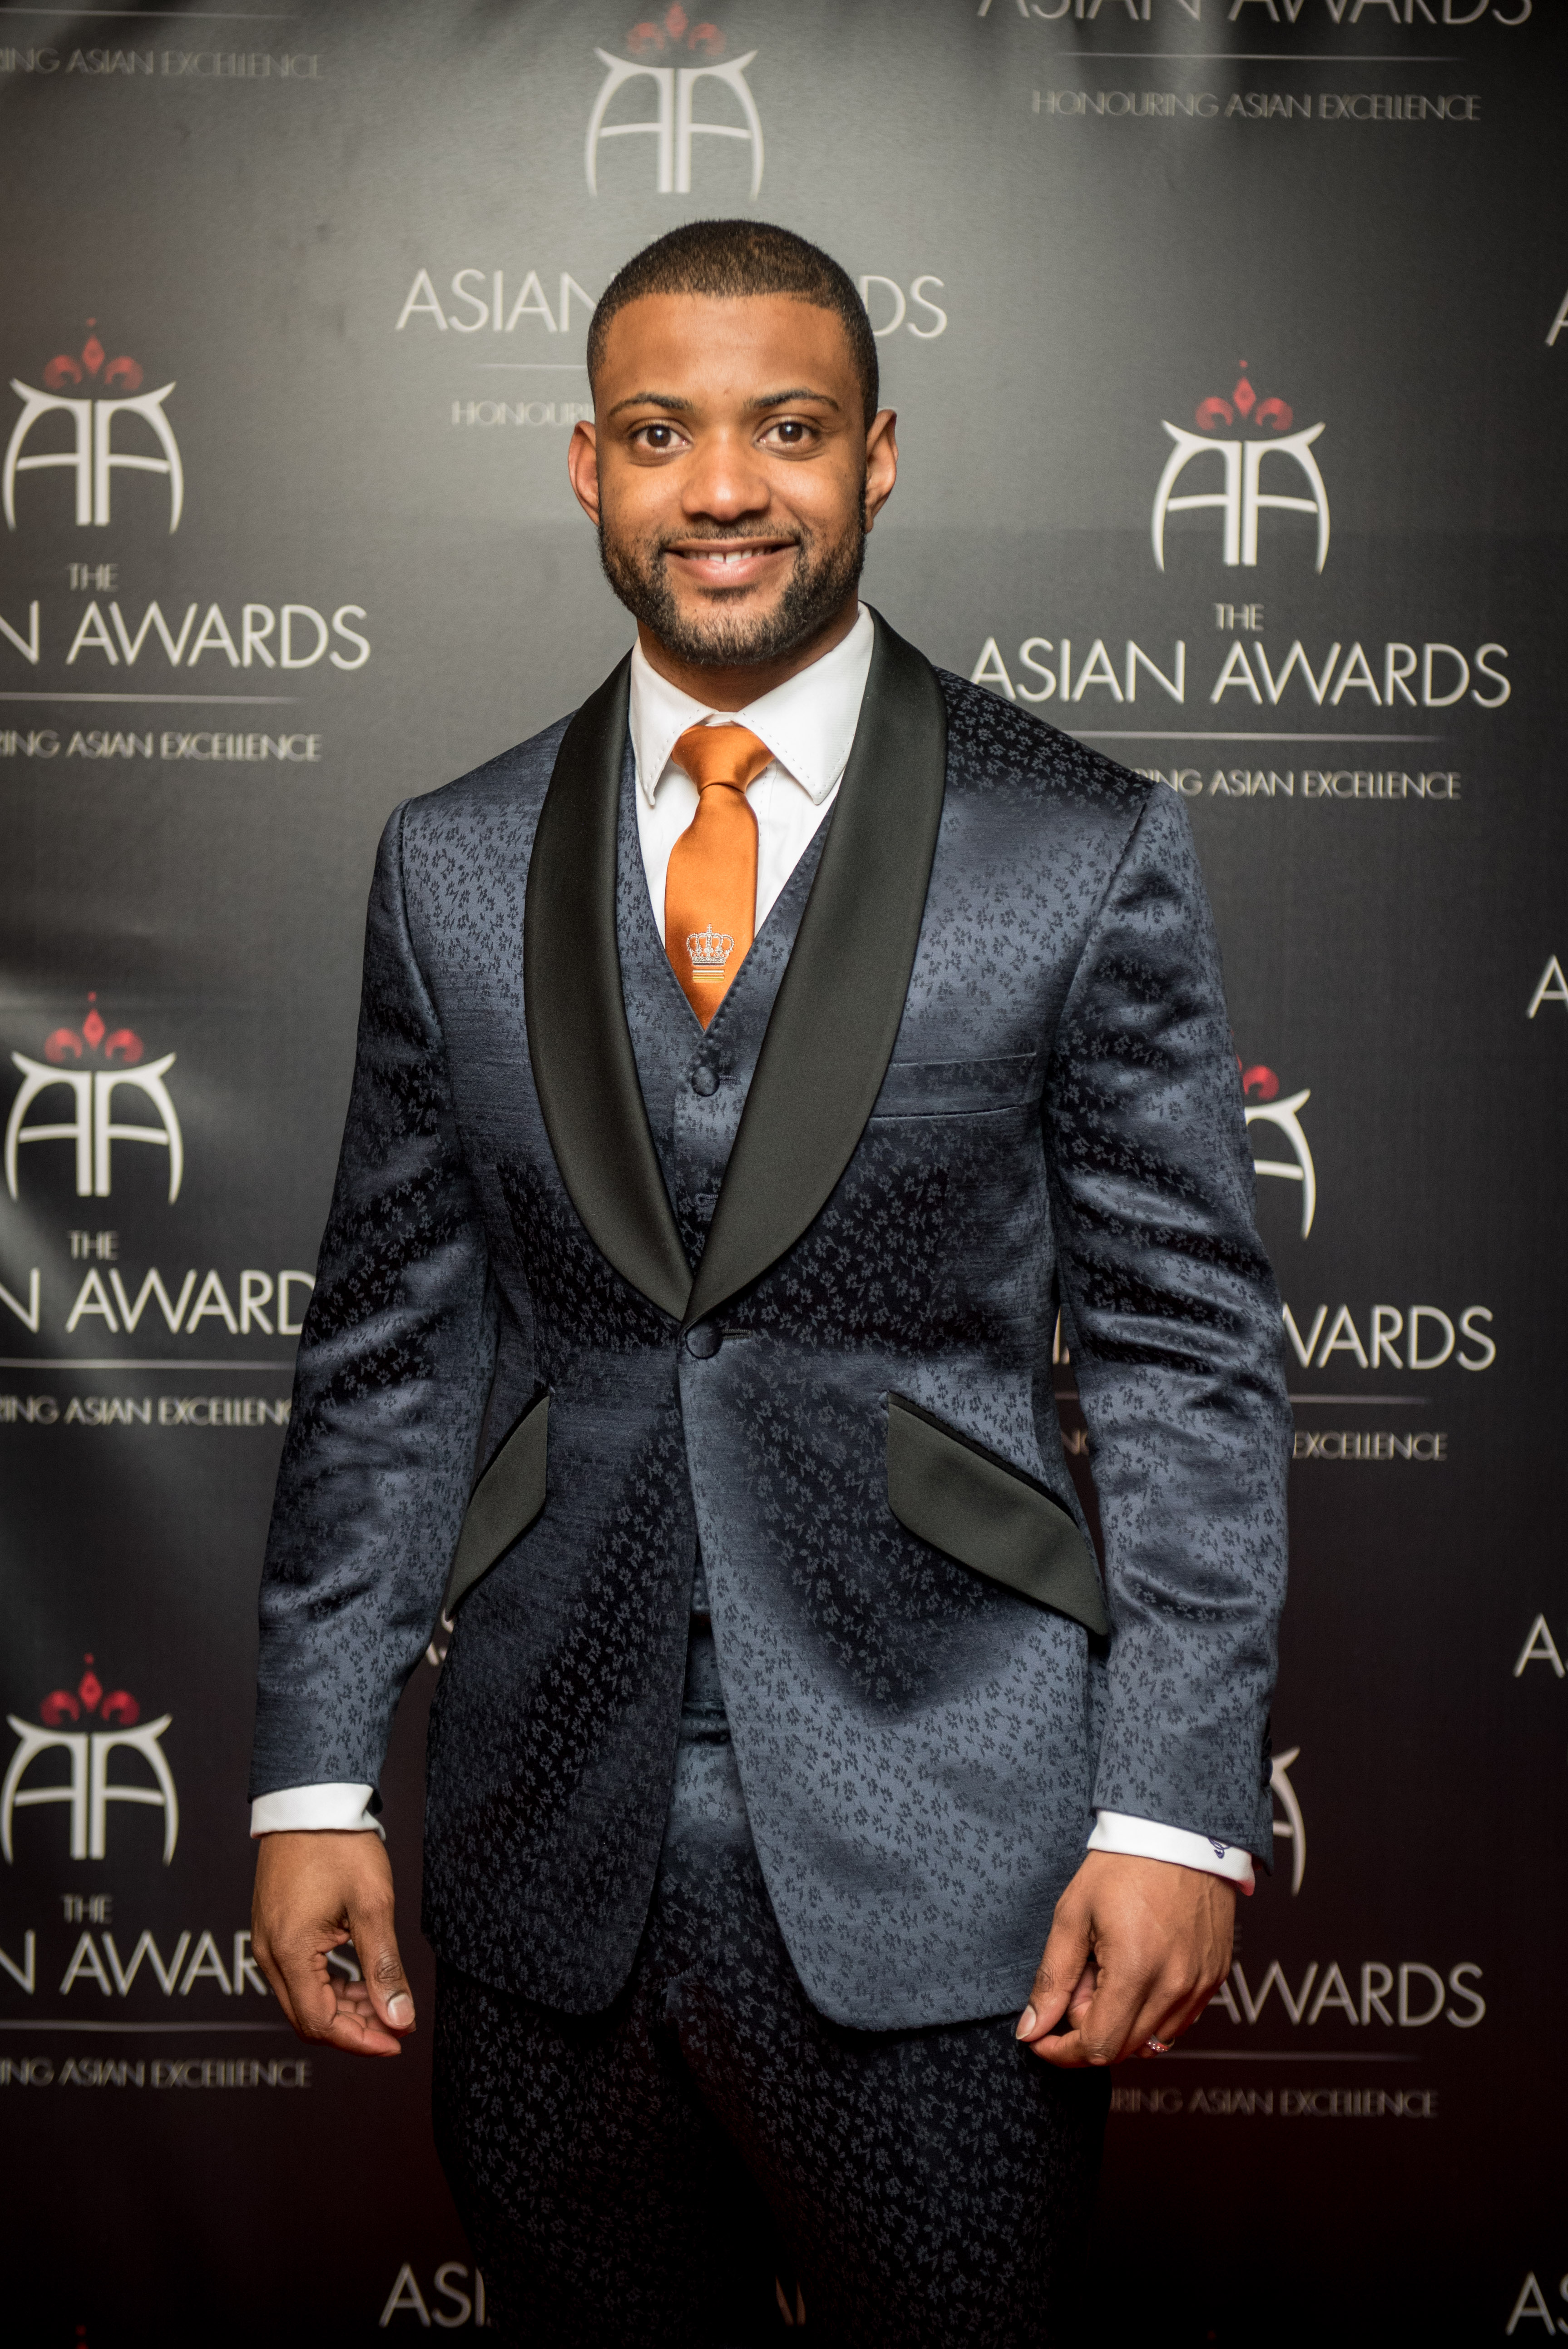 asian awards-43